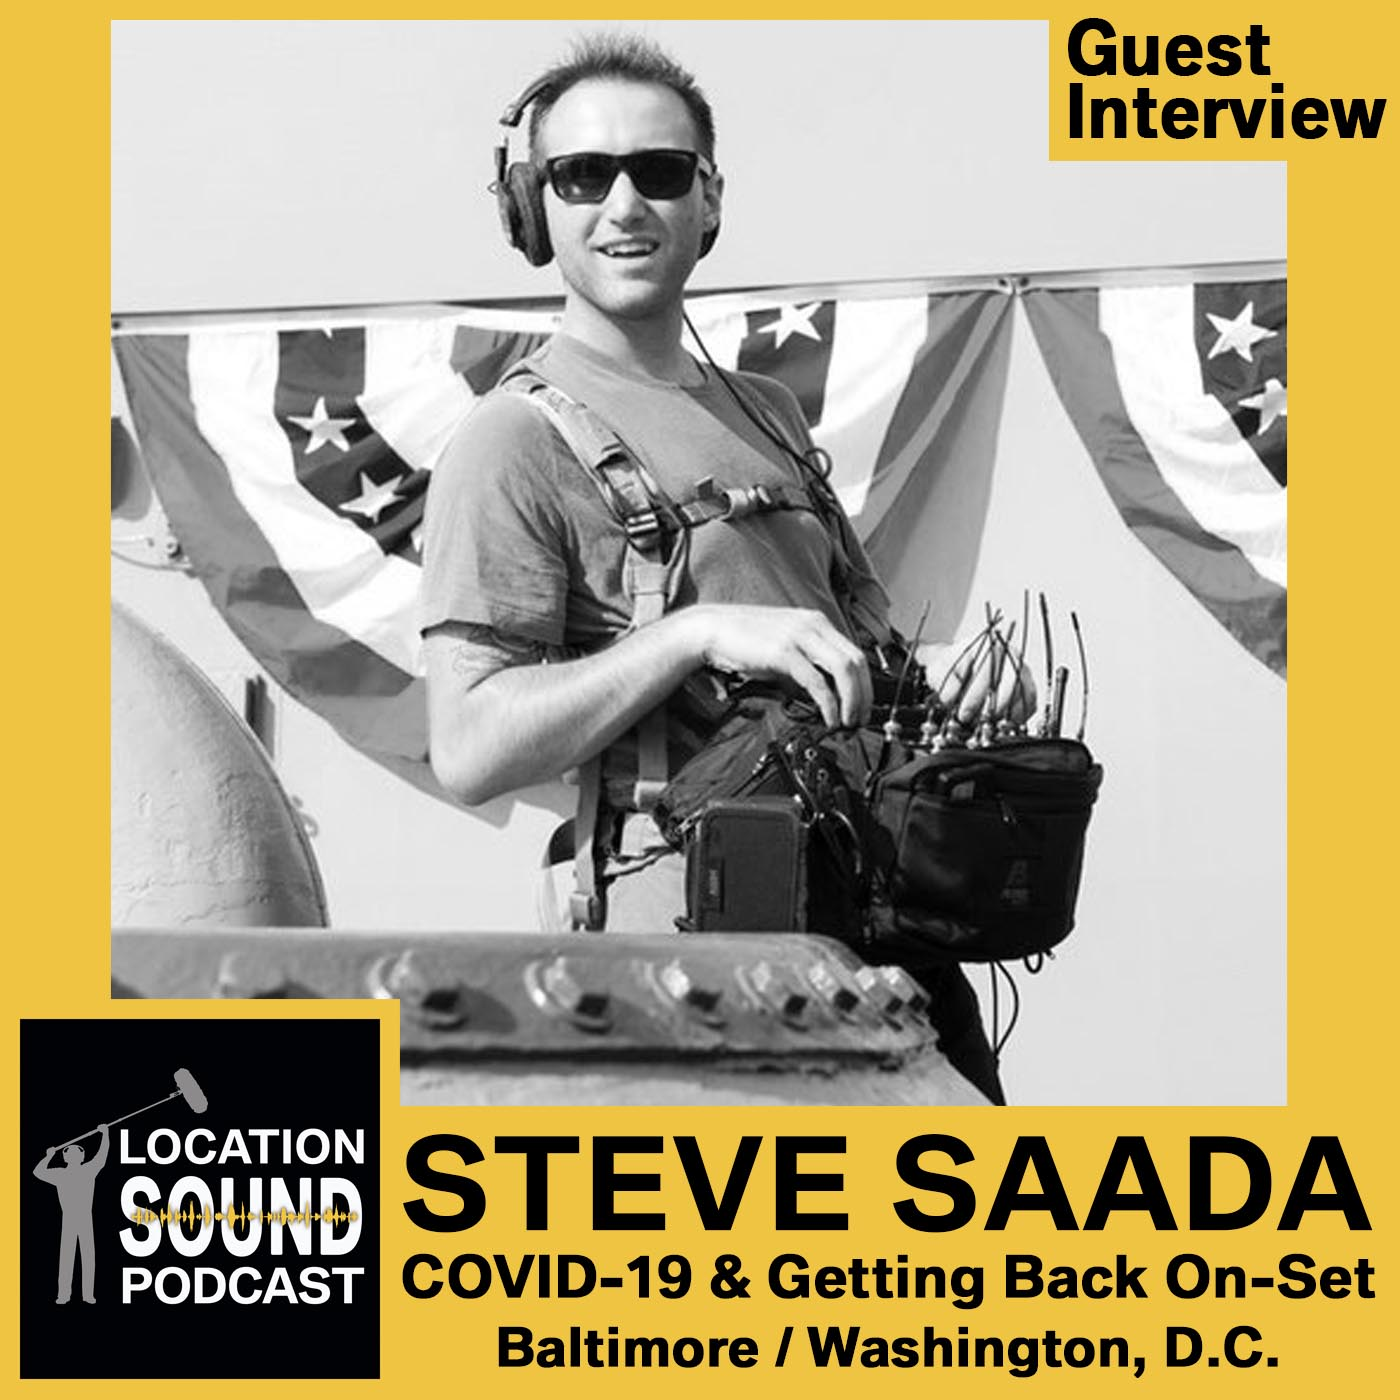 077 COVID-19 & Getting Safely Back On-Set with Steve Saada